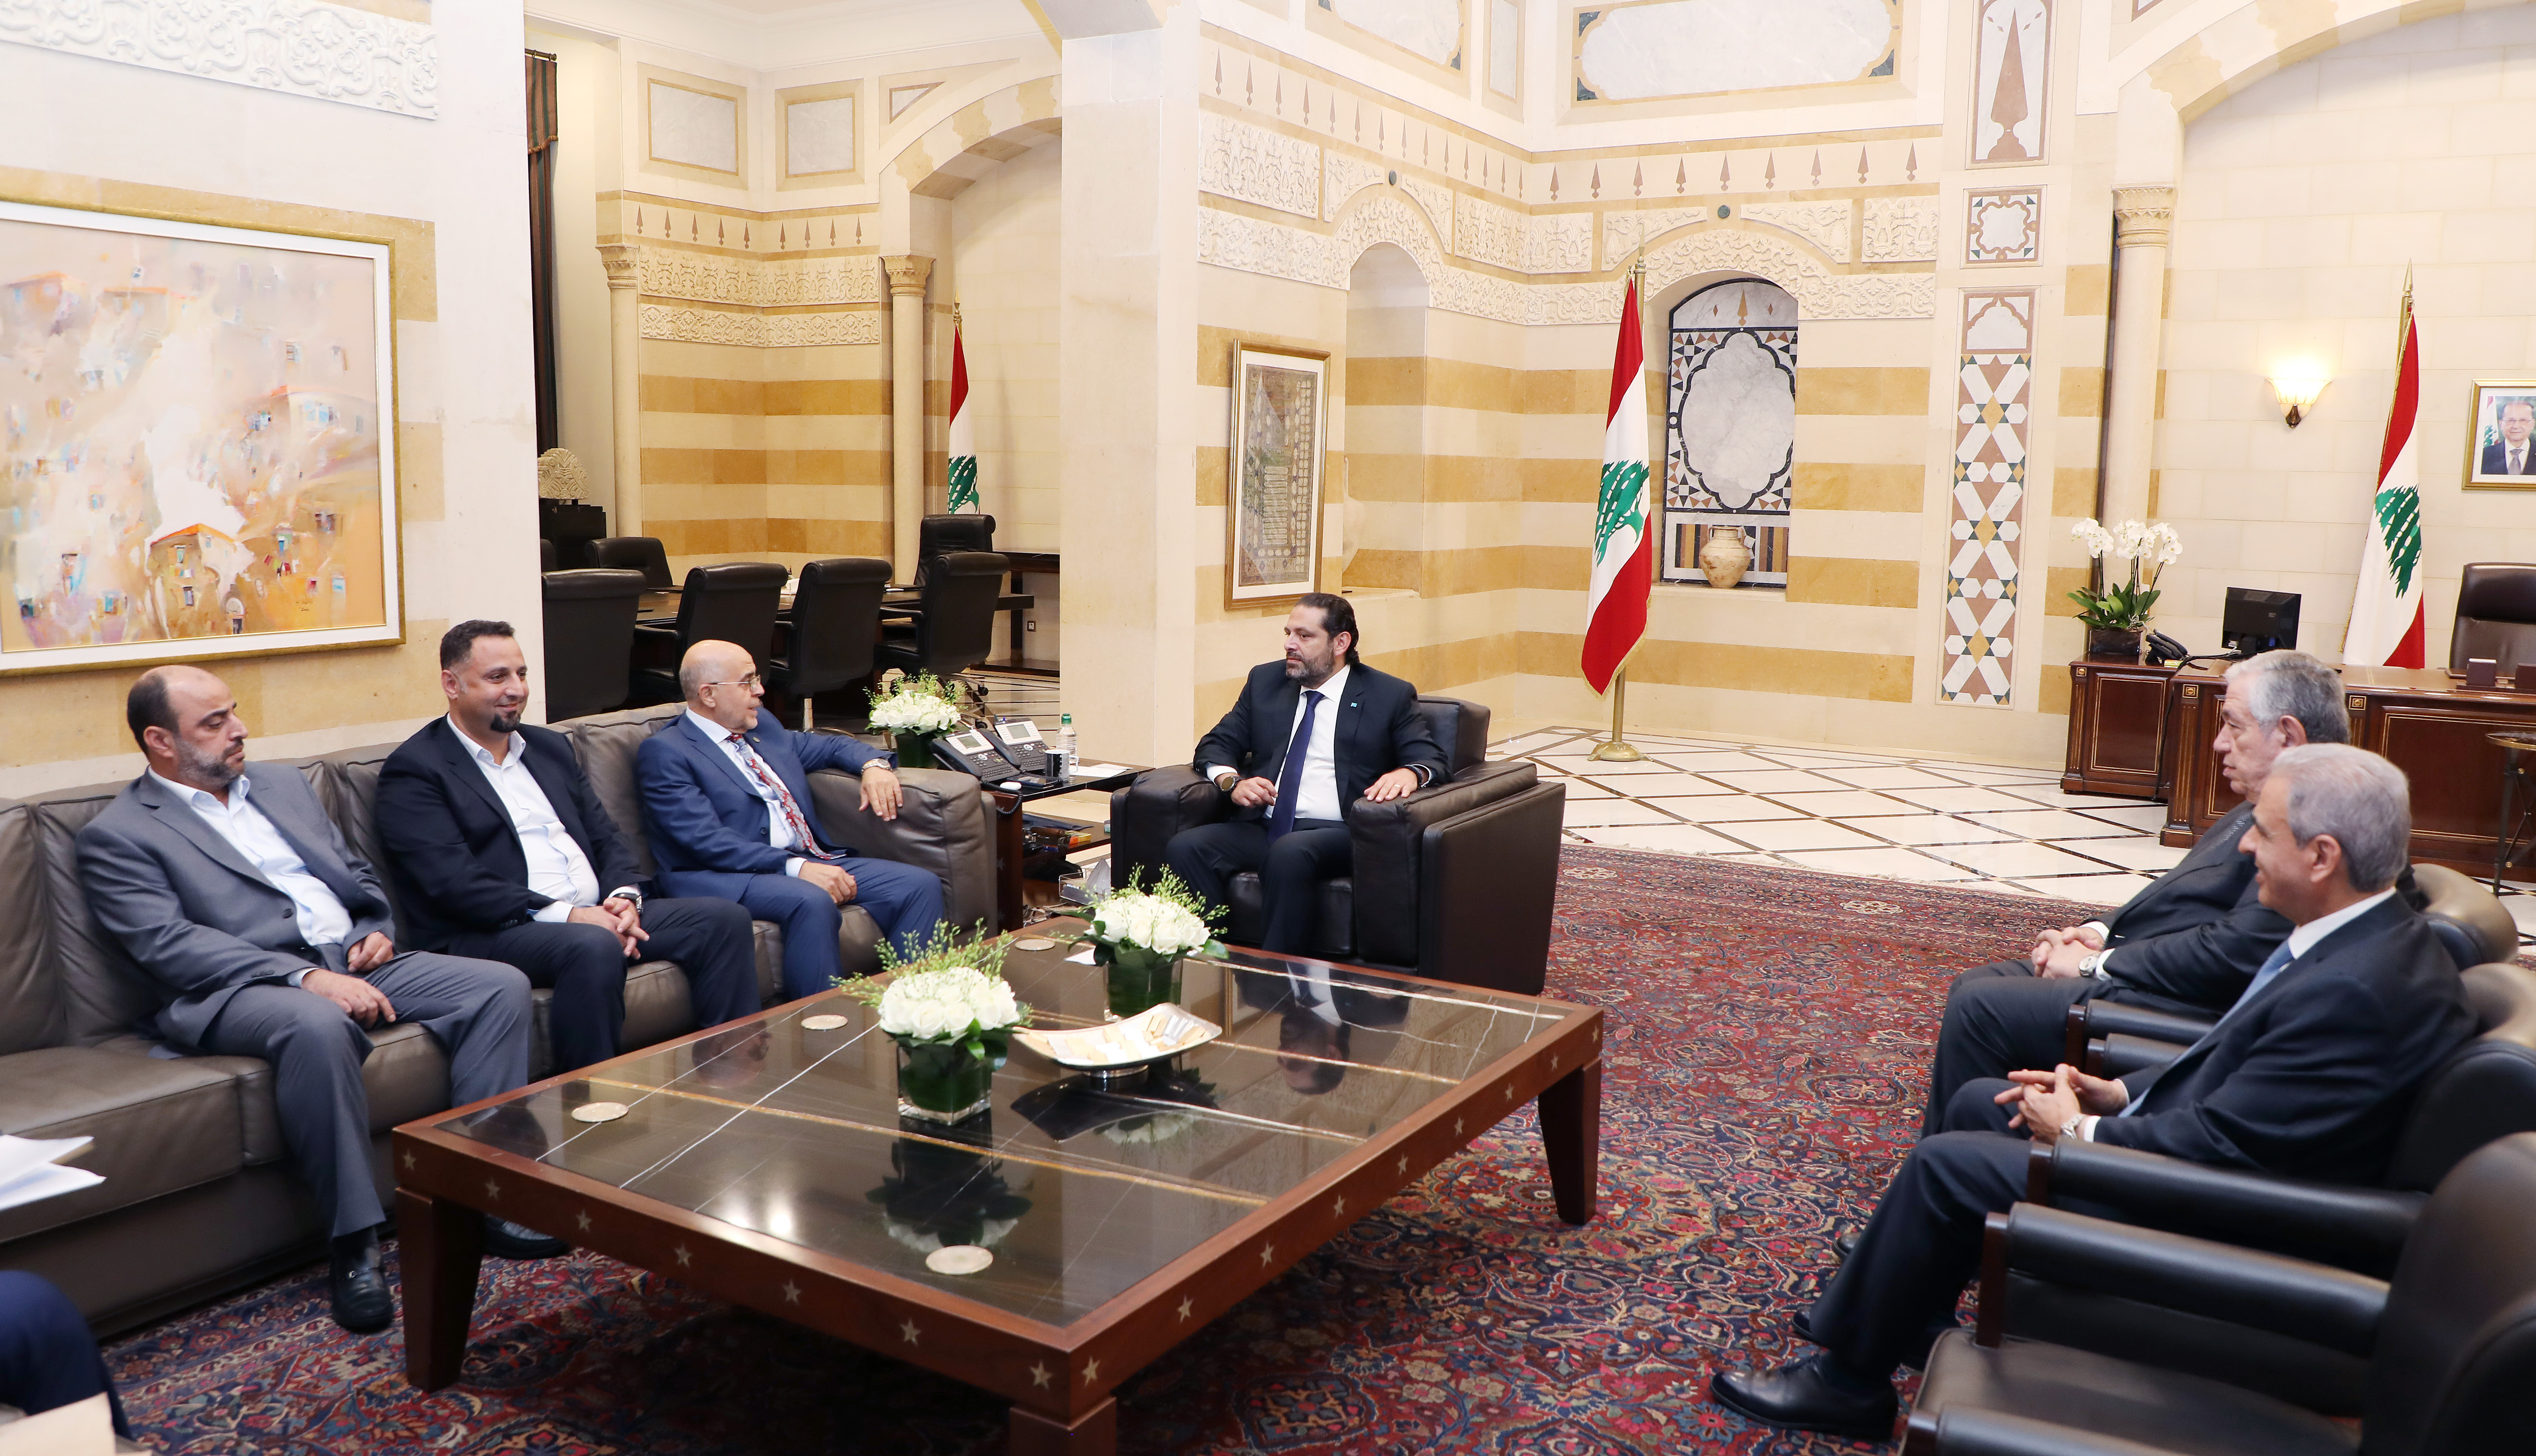 Pr Minister Saad Hariri meets a Delegation from Tripoly Municipality